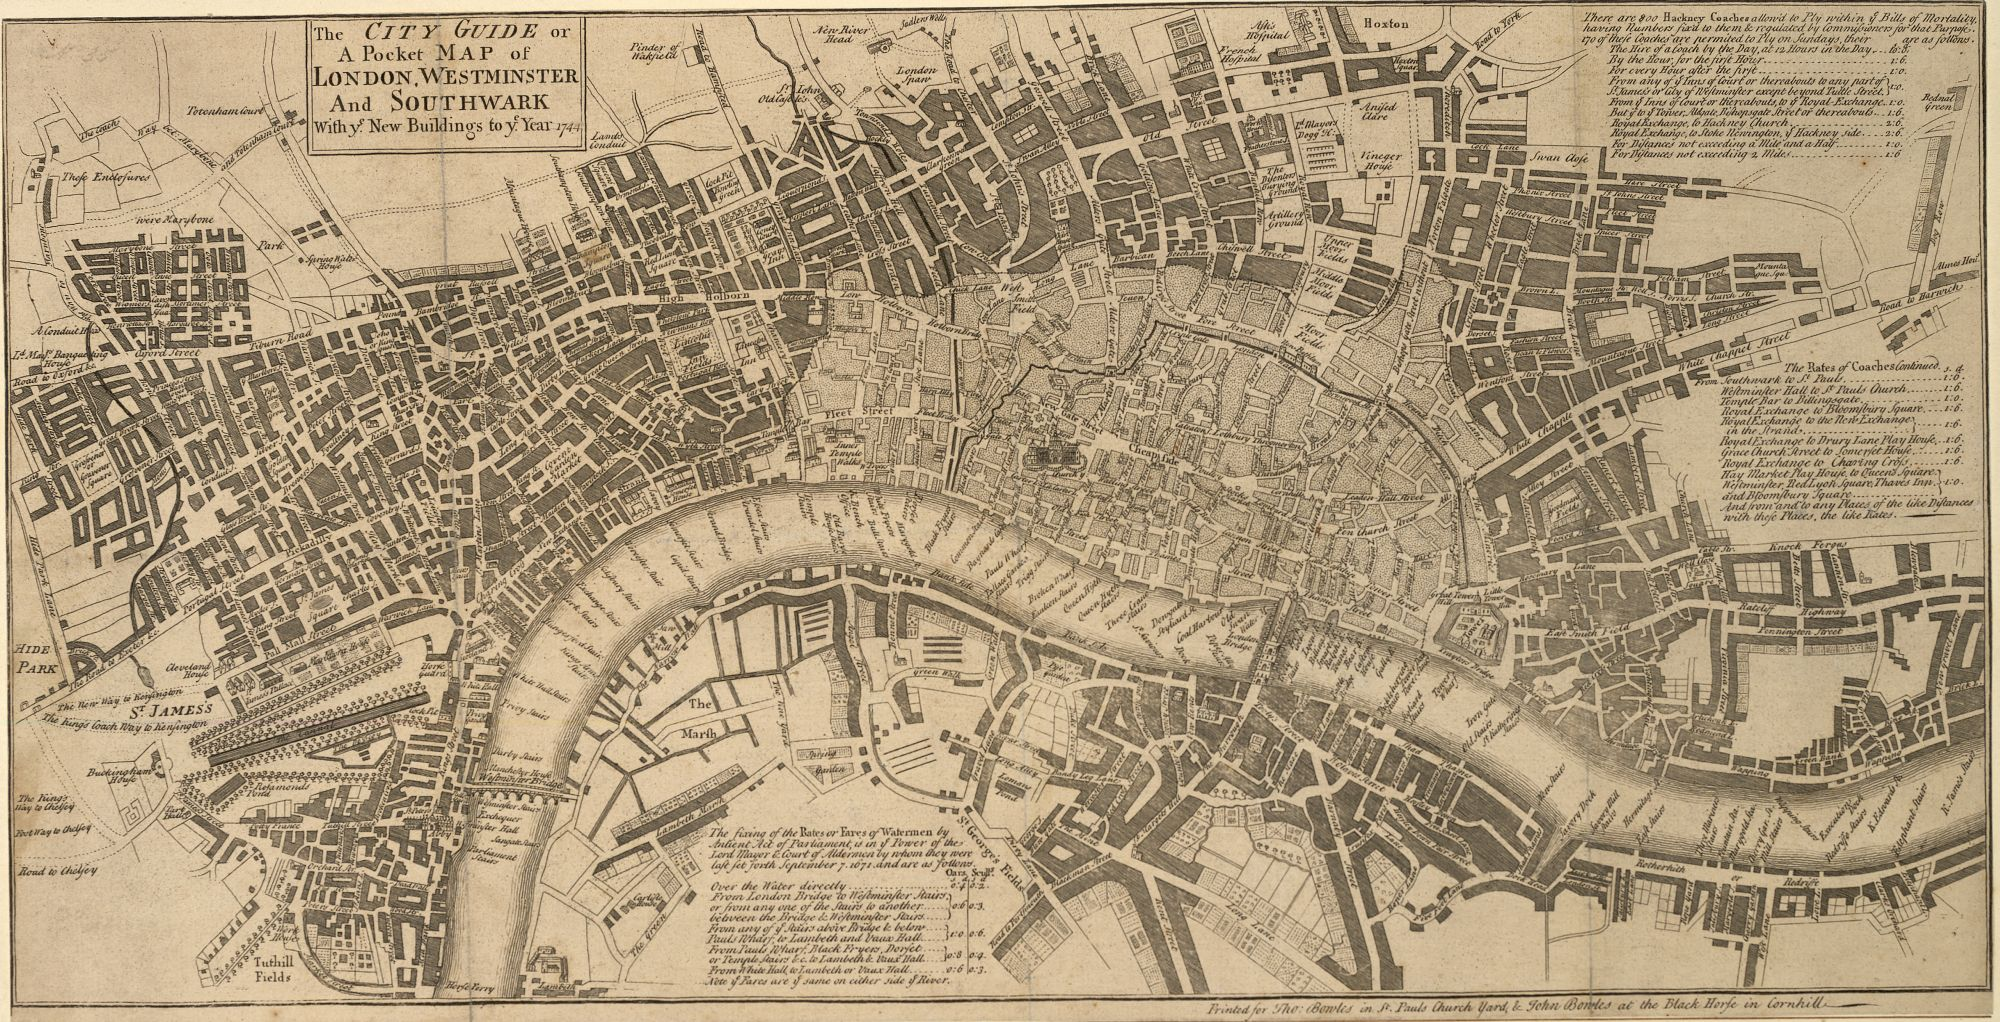 John Bowles' Pocket Map of London.